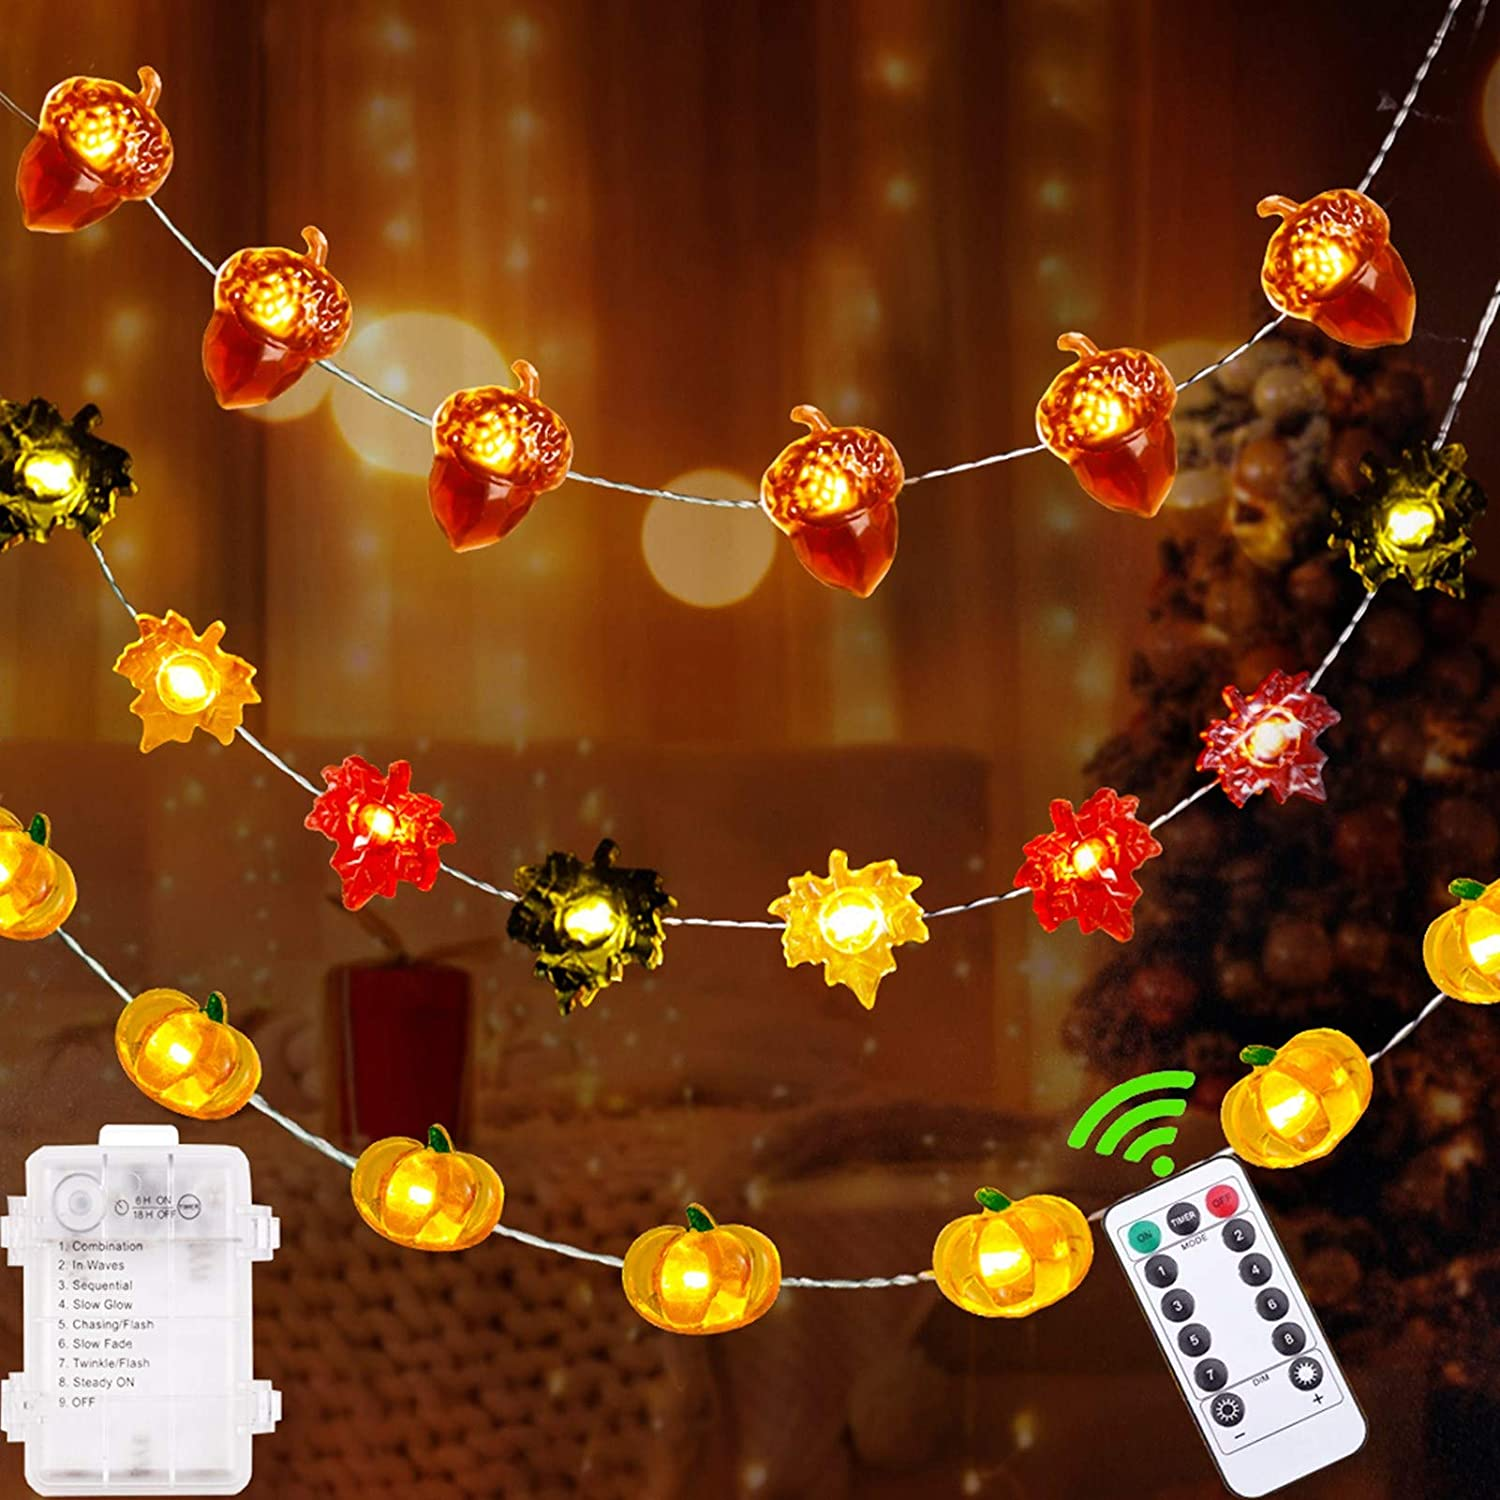 Fall Decor Thanksgiving Decorations Lighted Fall Garland,90 LED Set of 3 Acorn 3D Pumpkin Maple Leaf String Lights Battery Operated with Remote Control for Autumn Fall Harvest Thanksgiving Decor